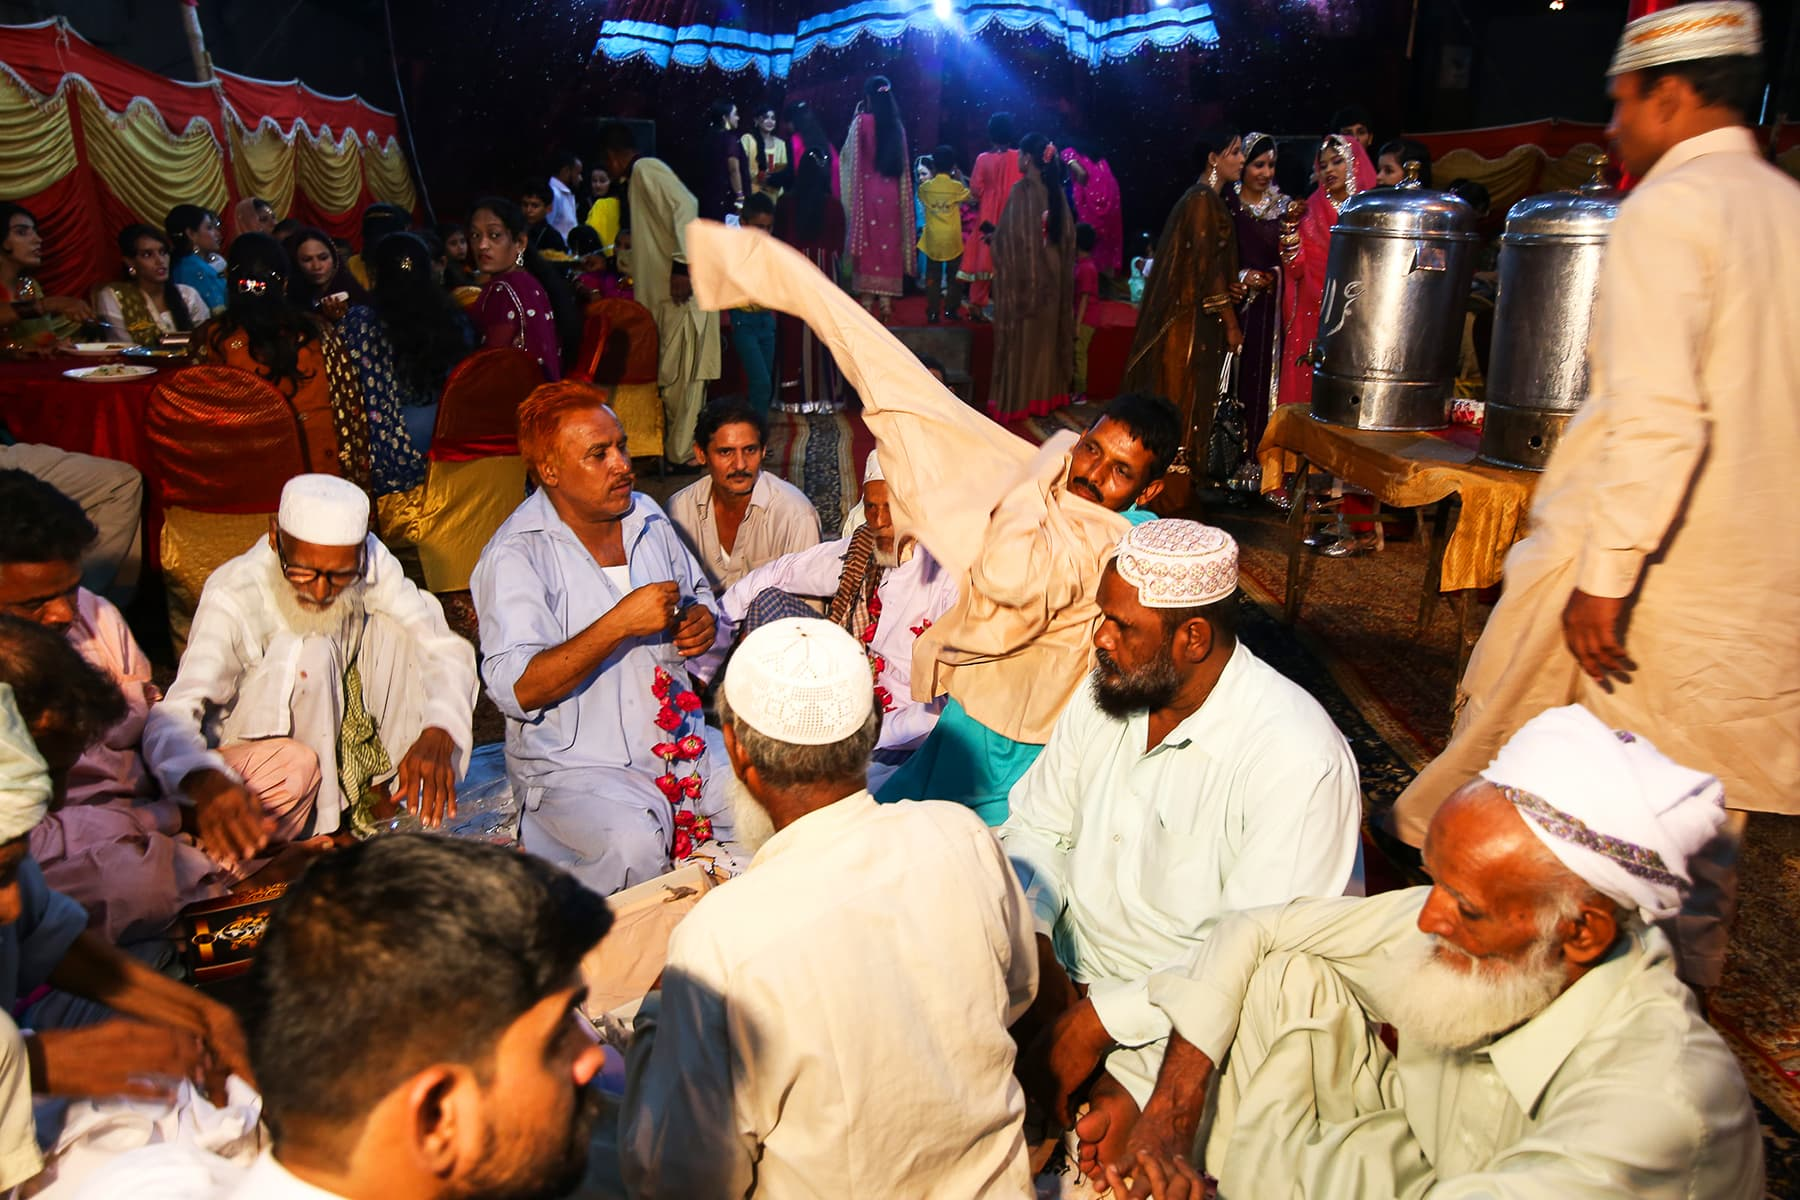 Bahut, the tradition where the bride's family gifts the groom's family with clothes..